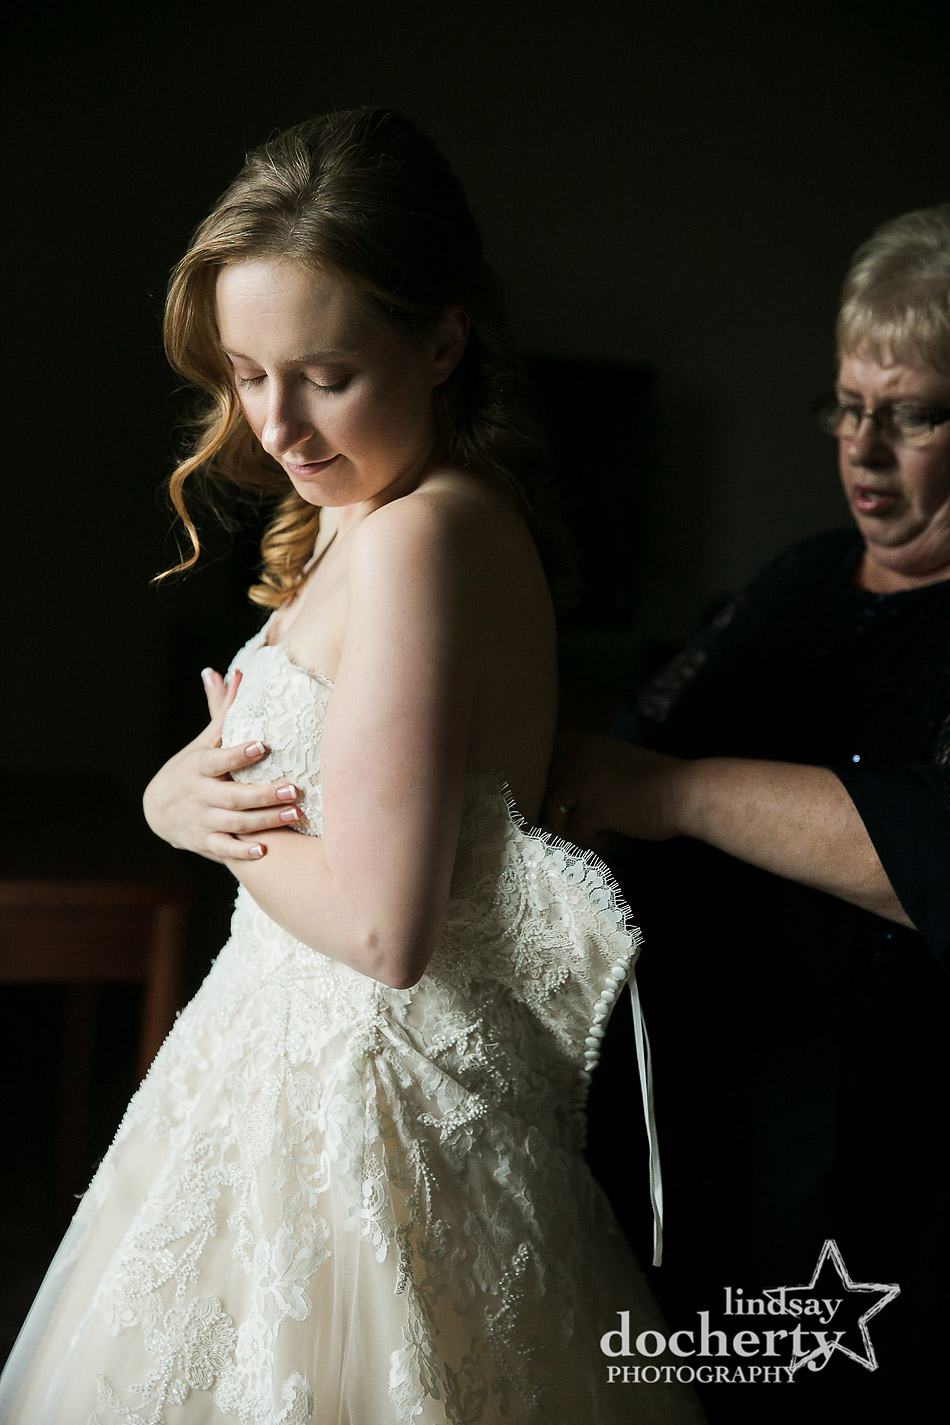 mother of bride helping bride into dress on morning of wedding day